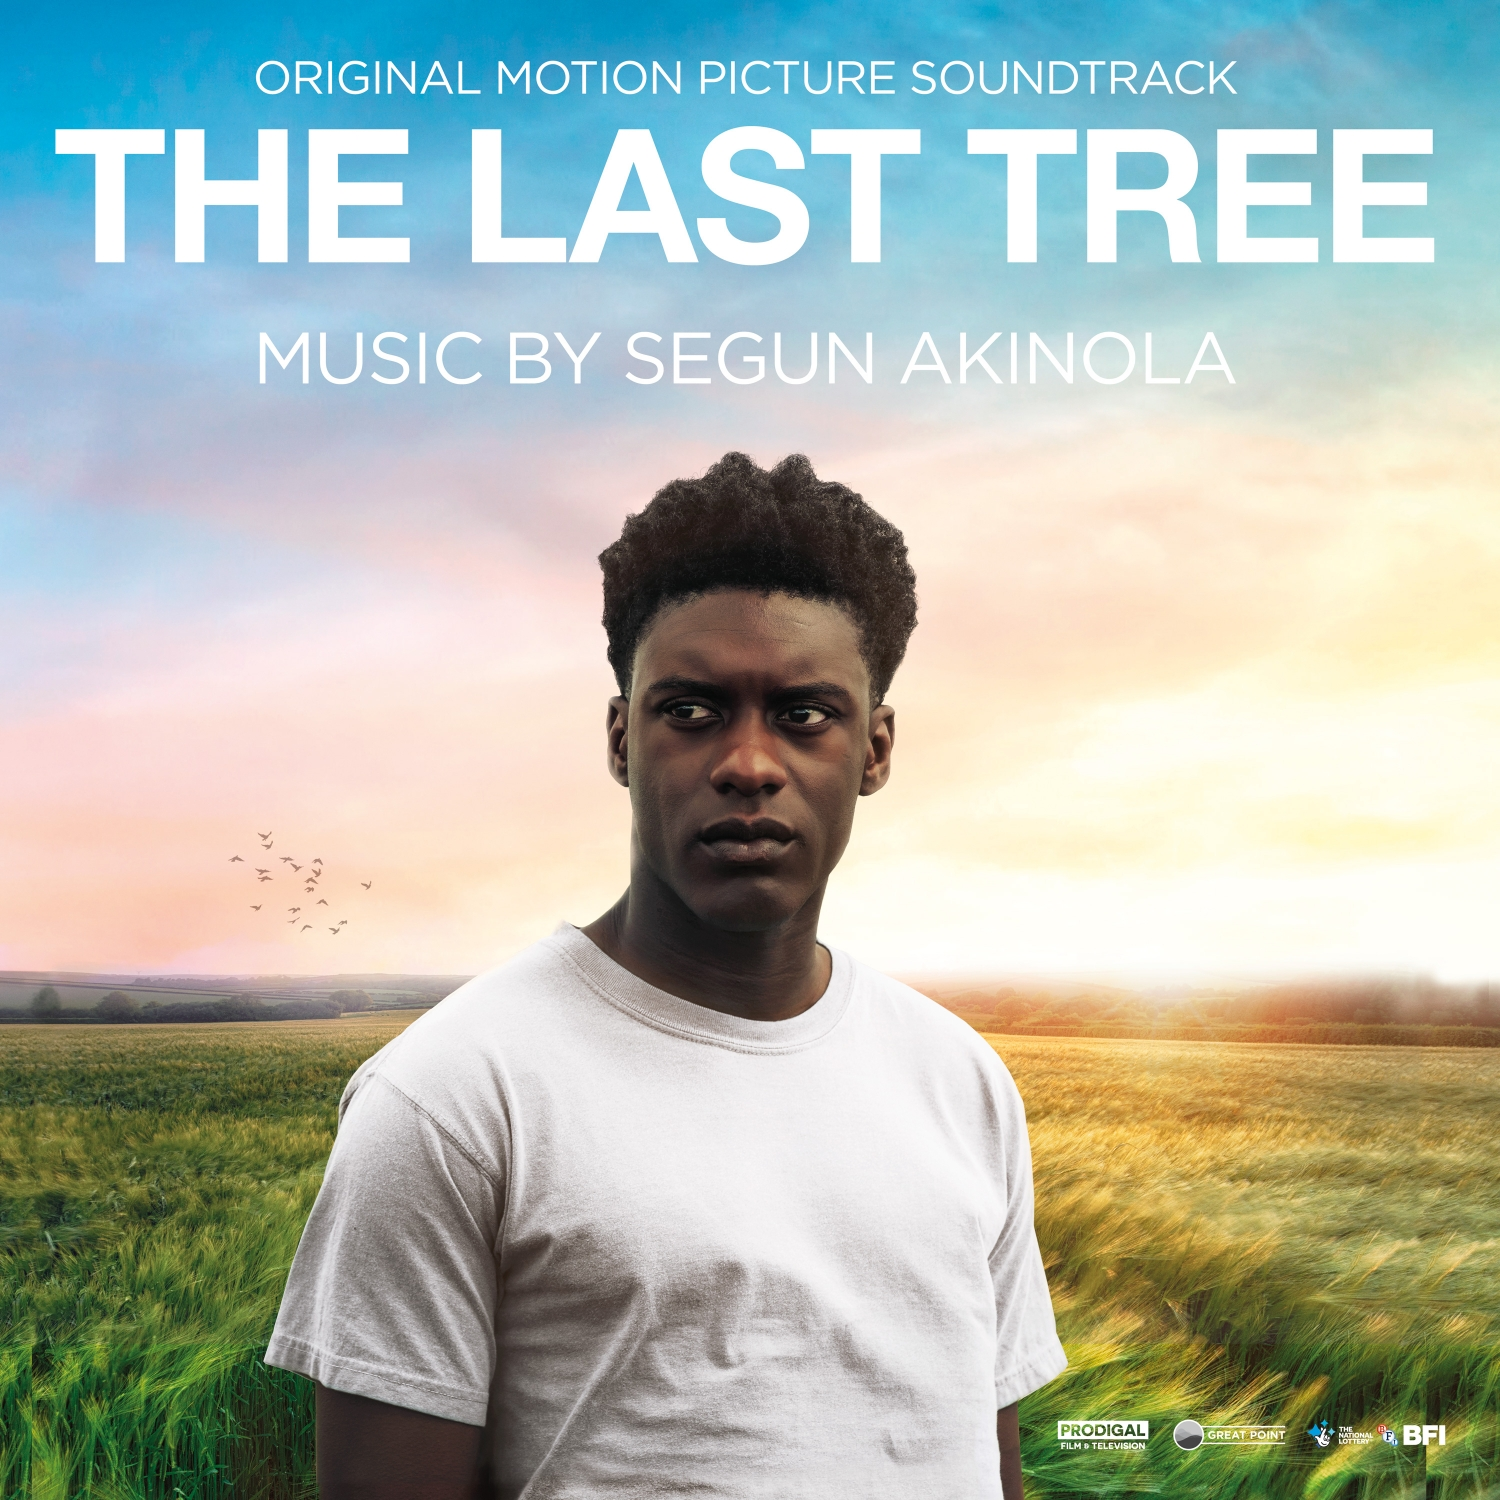 The Last Tree (Original Motion Picture Soundtrack) - Segun Akinola